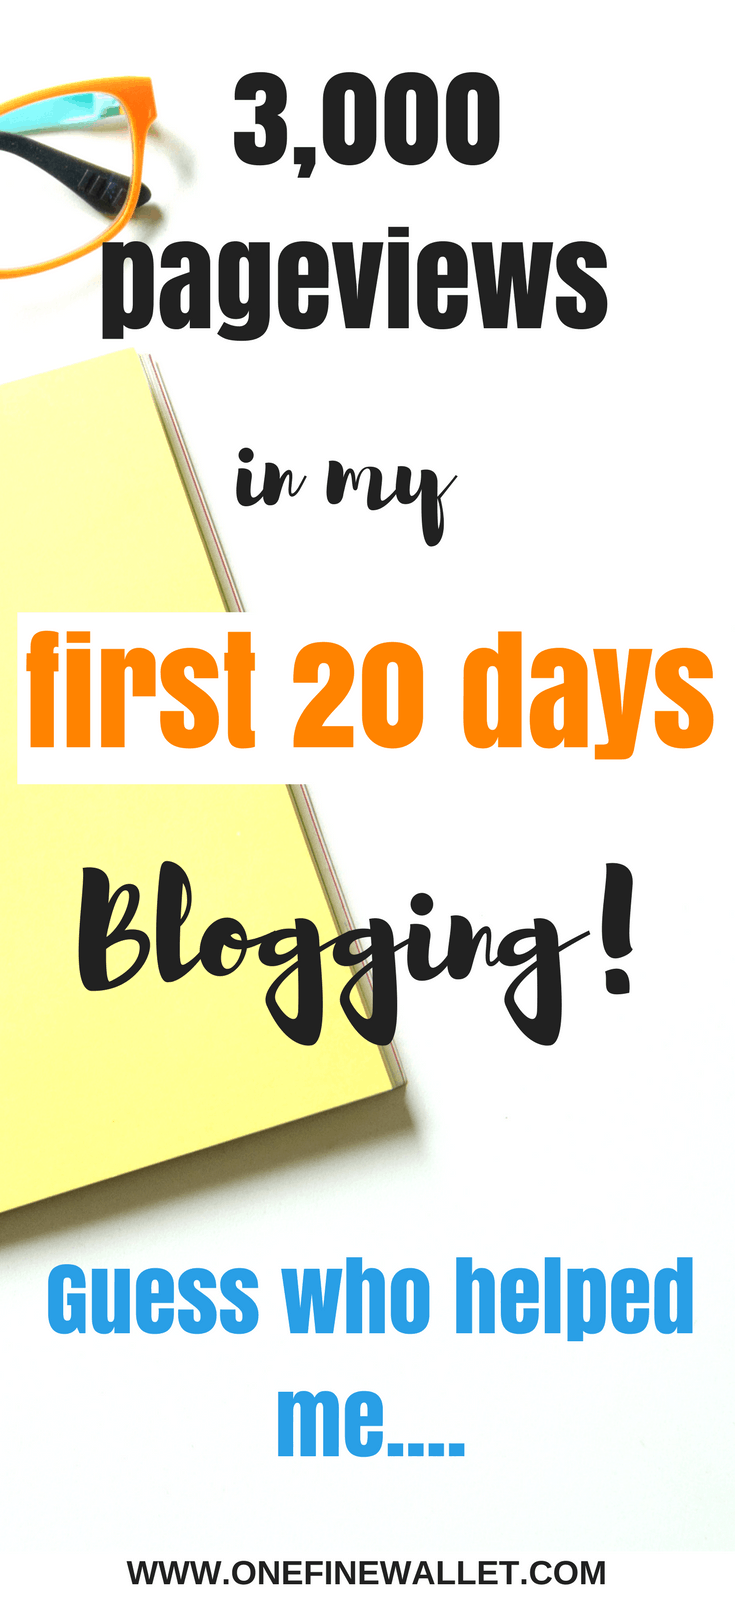 I reached almost 3,000 pageviews on my new blog in the first 20 days! I couldnt wait till the end of the month to write how I did it! #blogging #howtostartablog #bloggingforbeginners